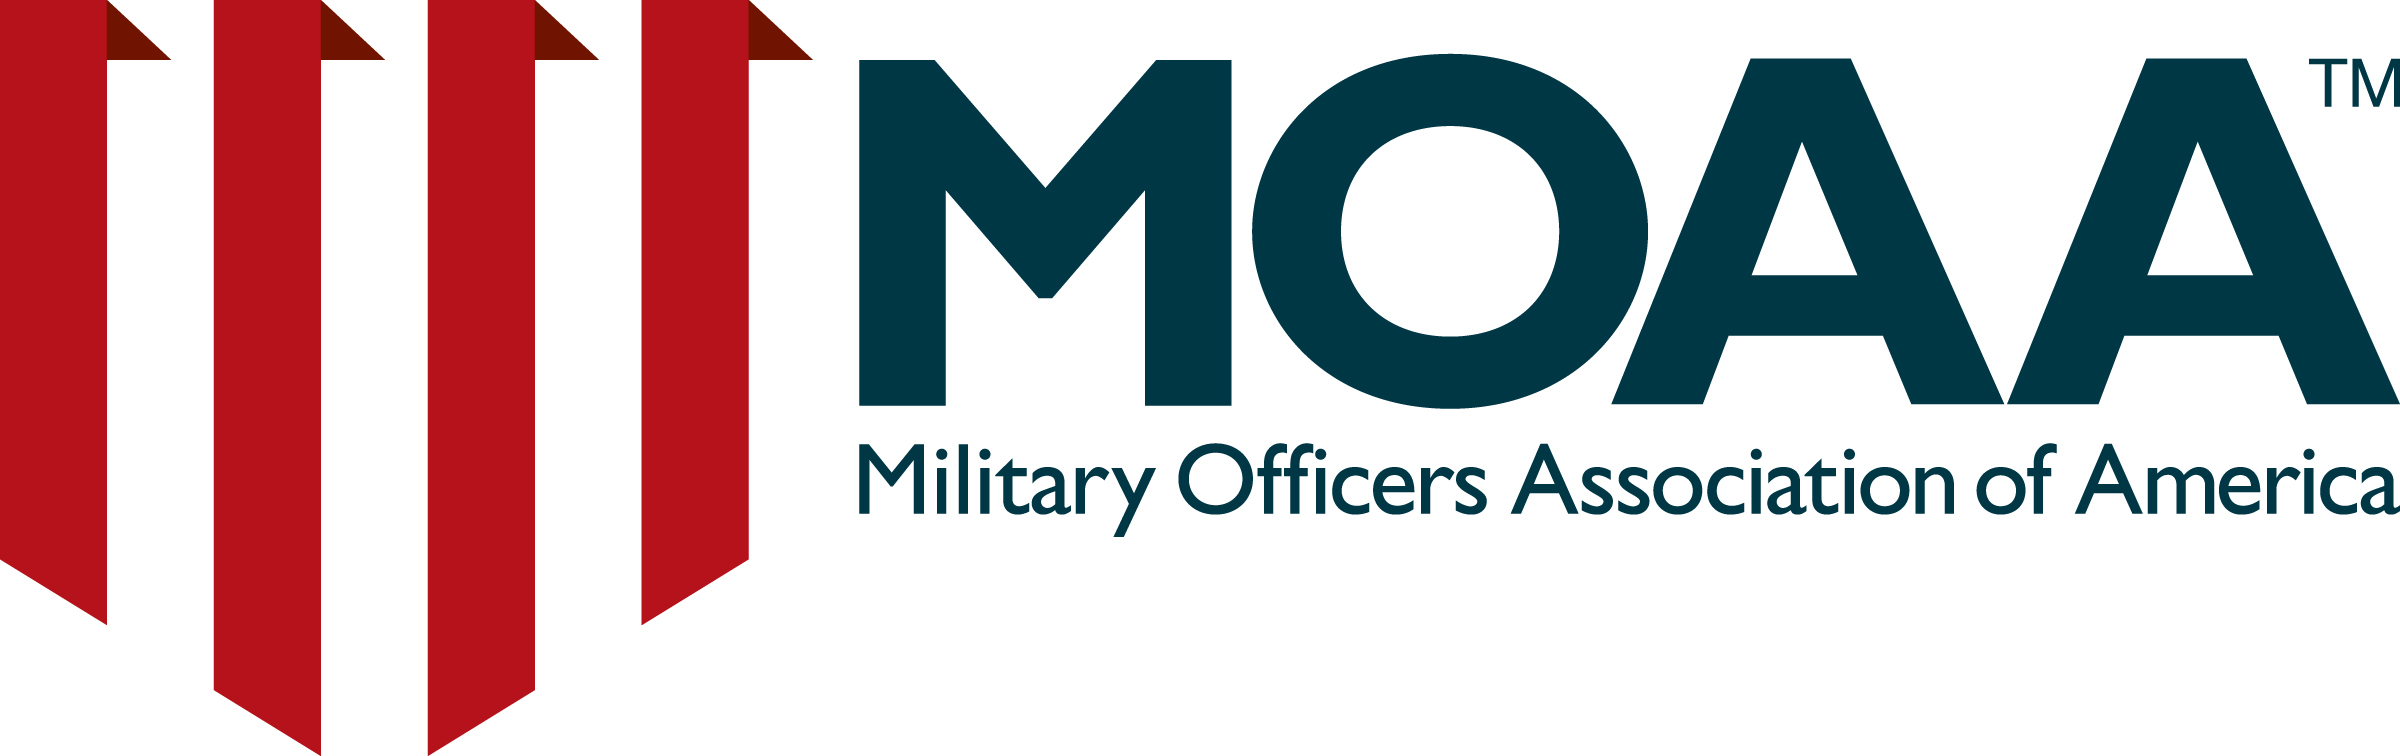 Military Officers Association of America Monthly Luncheon, Friday, January 22, 2016 at Atlantic Shores.